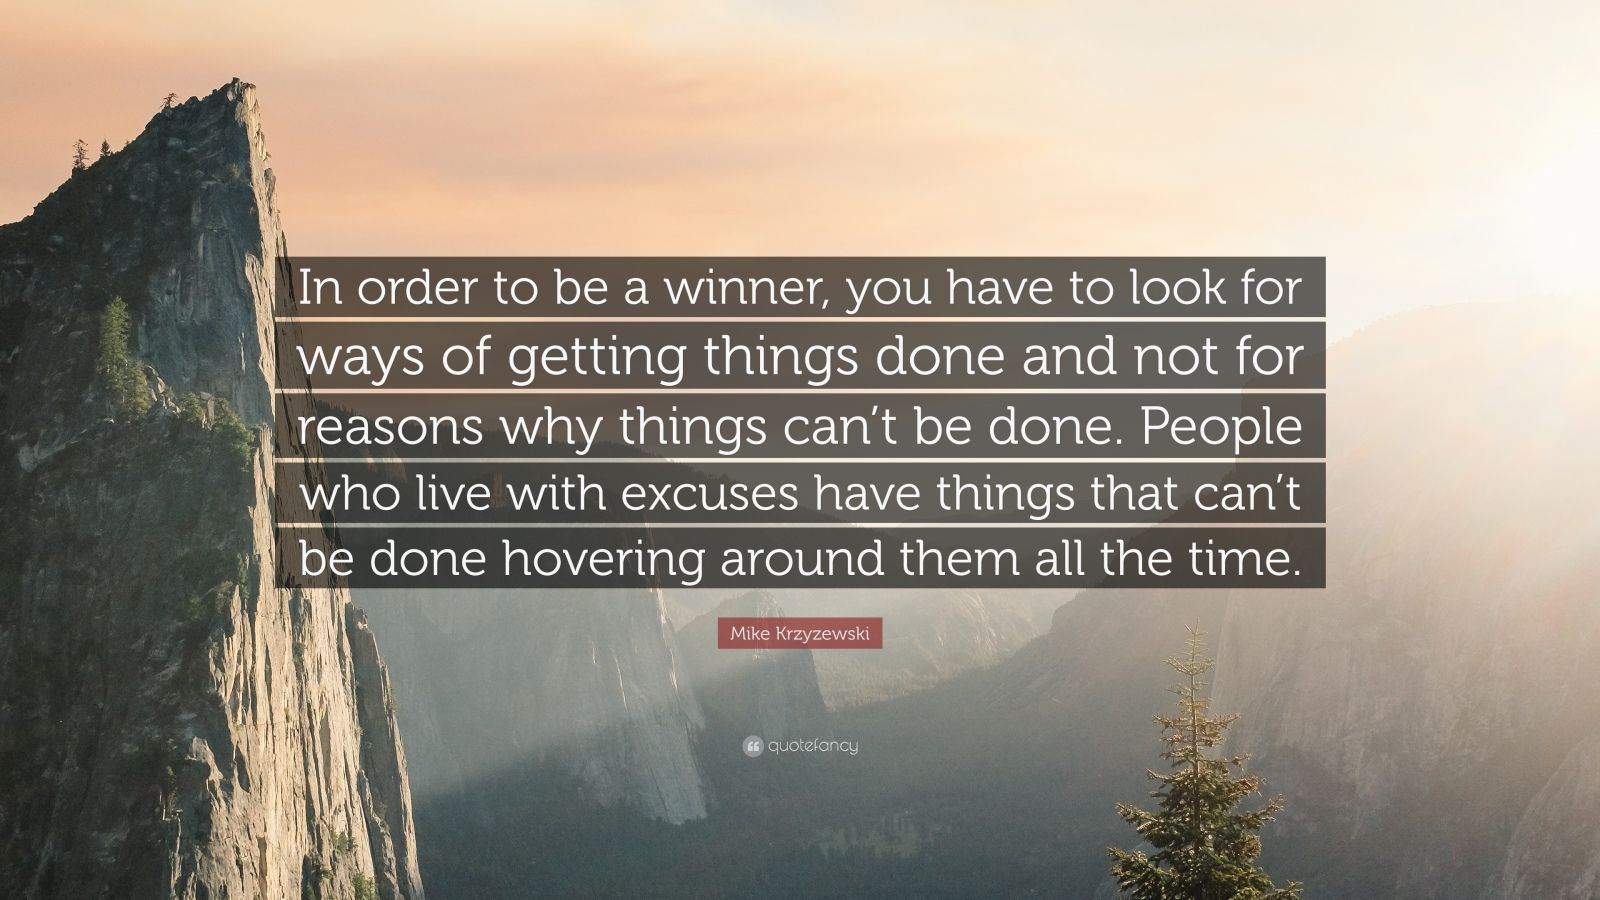 """Mike Krzyzewski Quote: """"In order to be a winner, you have to look for ways of getting things done and not for reasons why things can't be done. People who live with excuses have things that can't be done hovering around them all the time."""""""